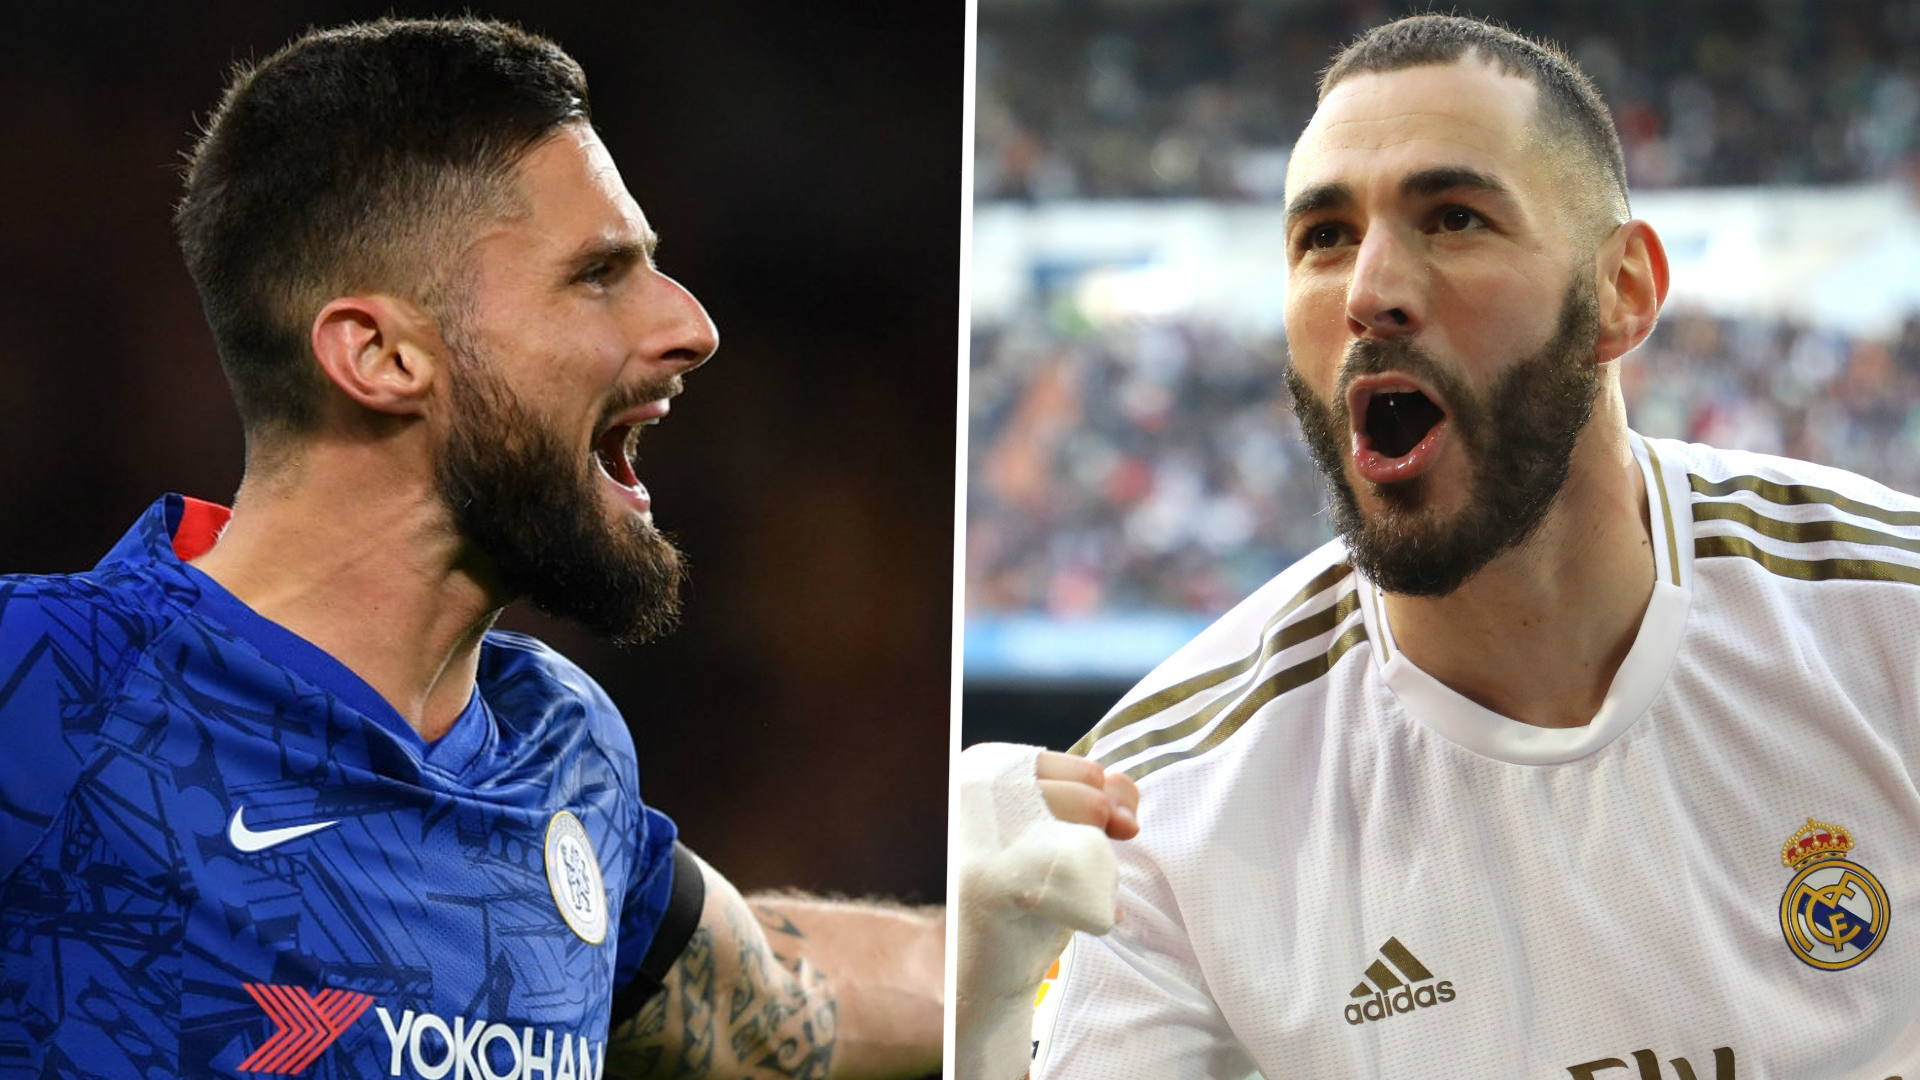 'I never had a dispute with Benzema' - Giroud says Madrid striker's France exile is 'kind of a mess'